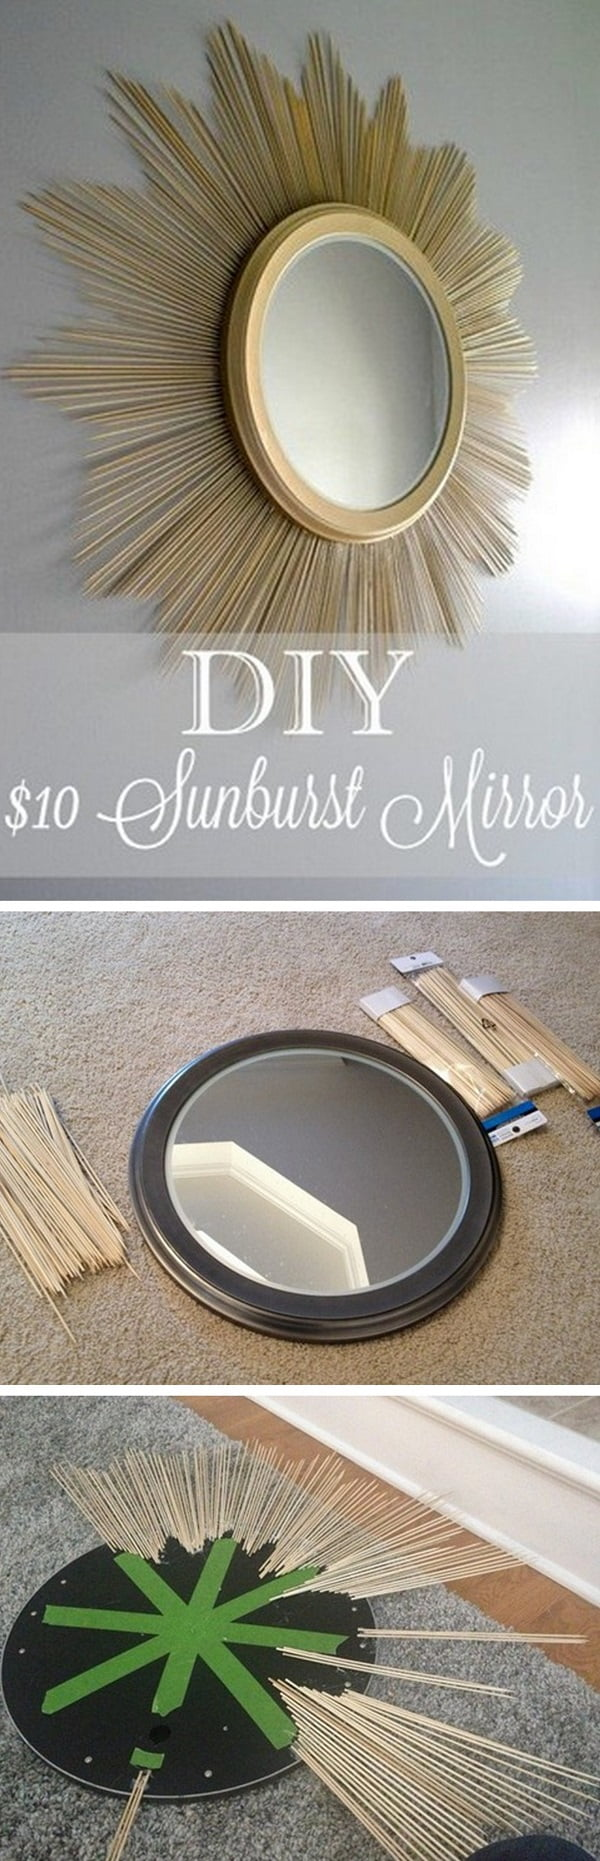 50 Fab DIY Mirror Frames You Can Easily Make Yourself - Check out how to make this DIY sunburst mirror for $10